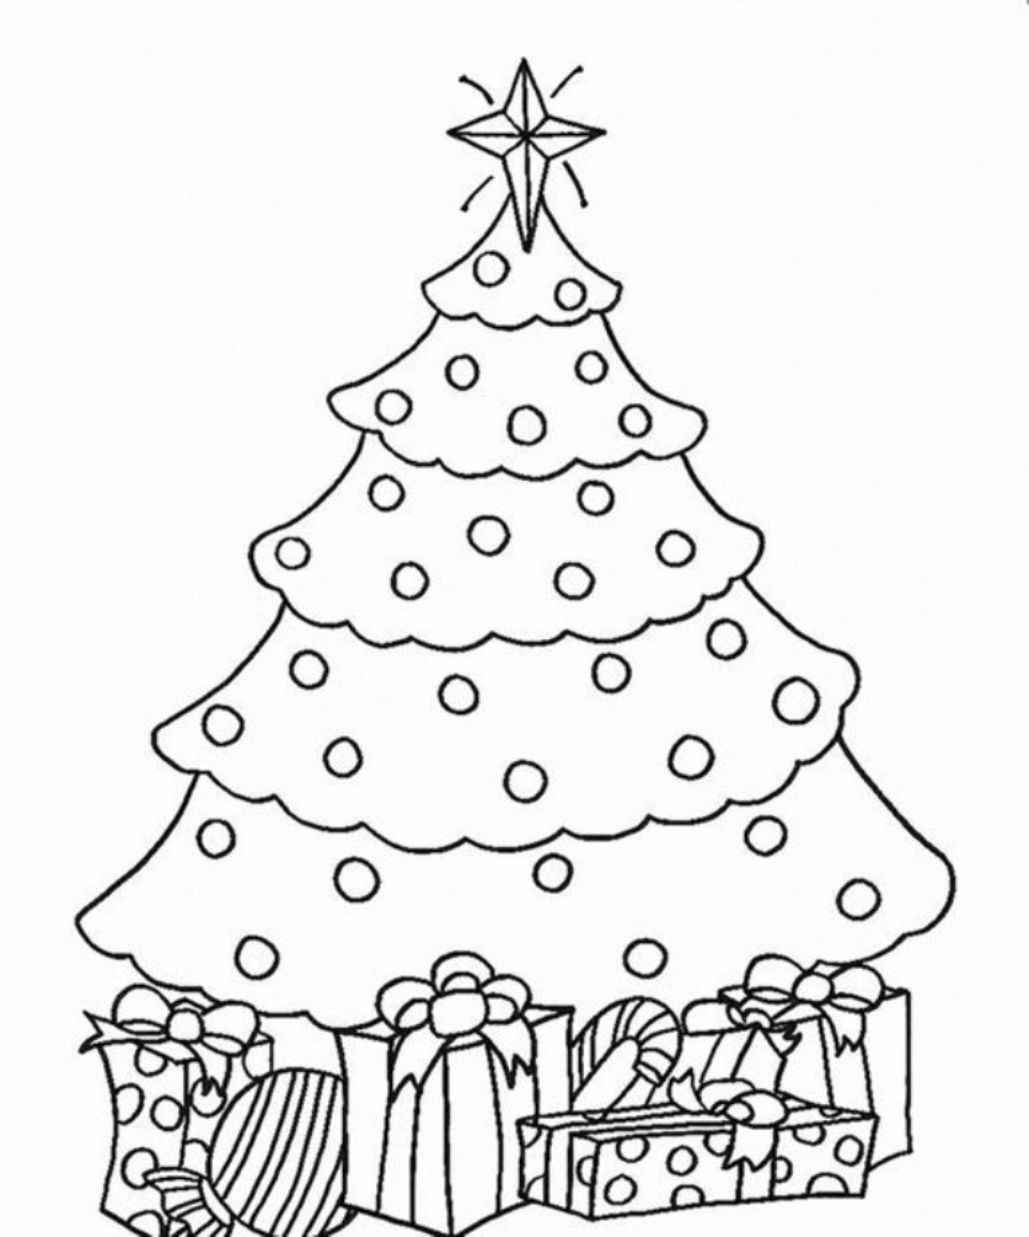 1029x1237 How To Draw A Christmas Tree With Presents How To Draw A Christmas